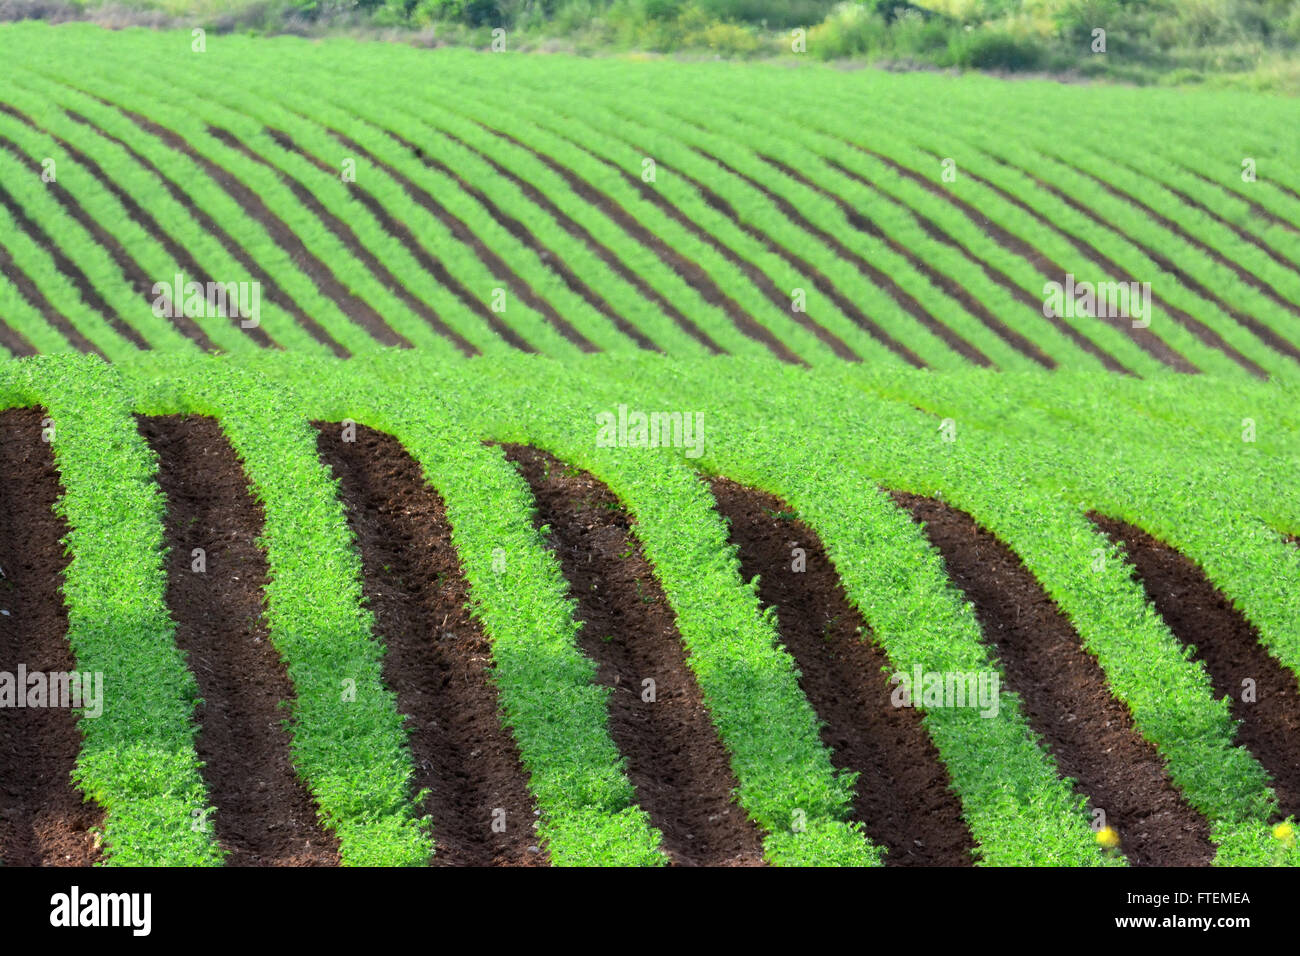 Hilly green field - Stock Image